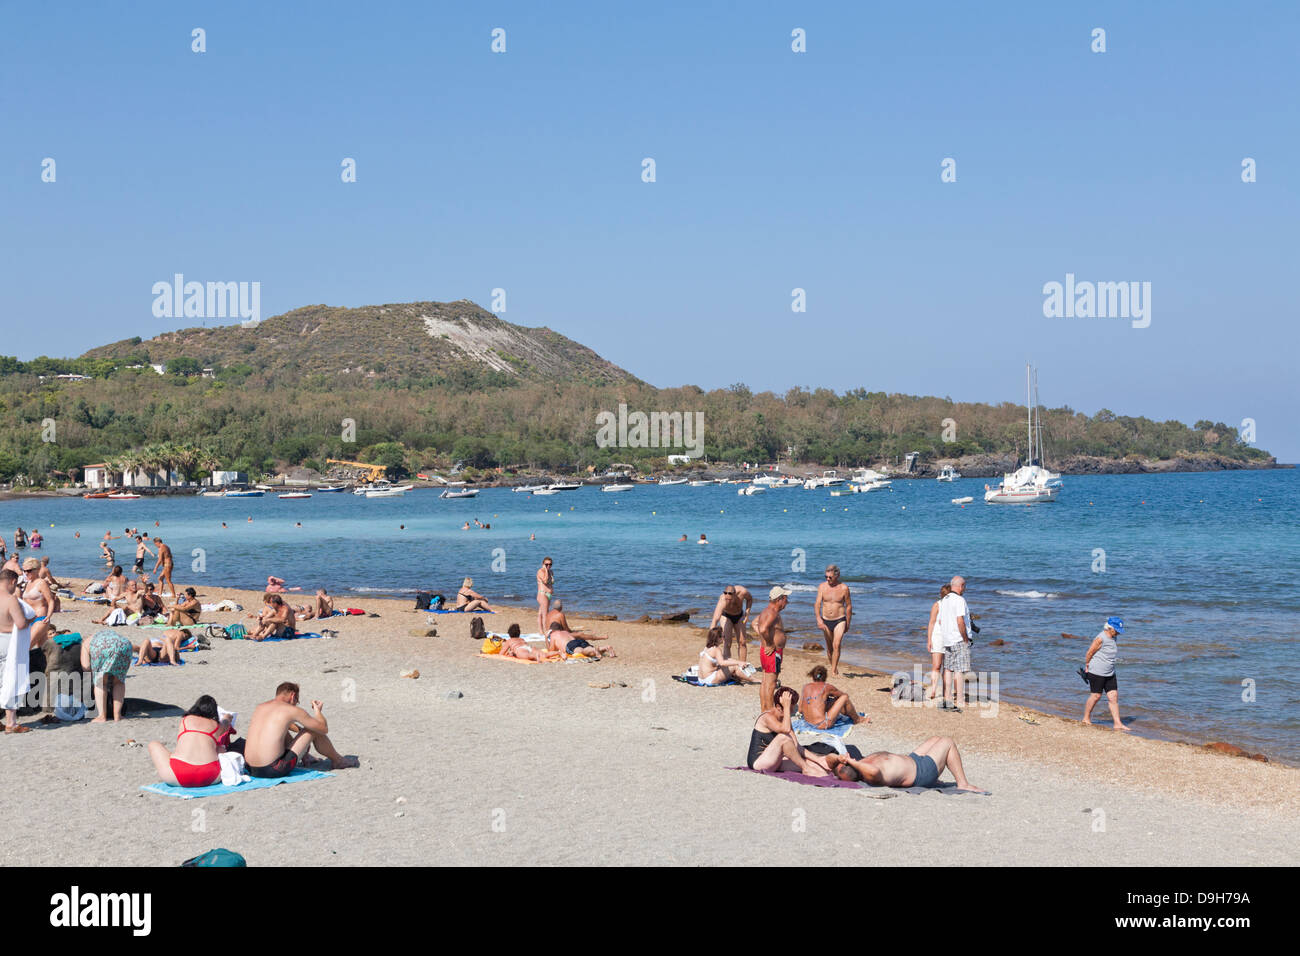 Spiaggia delle aque calde, Hot Water Beach, Vulcano, Aeolian Islands, Italy - Stock Image